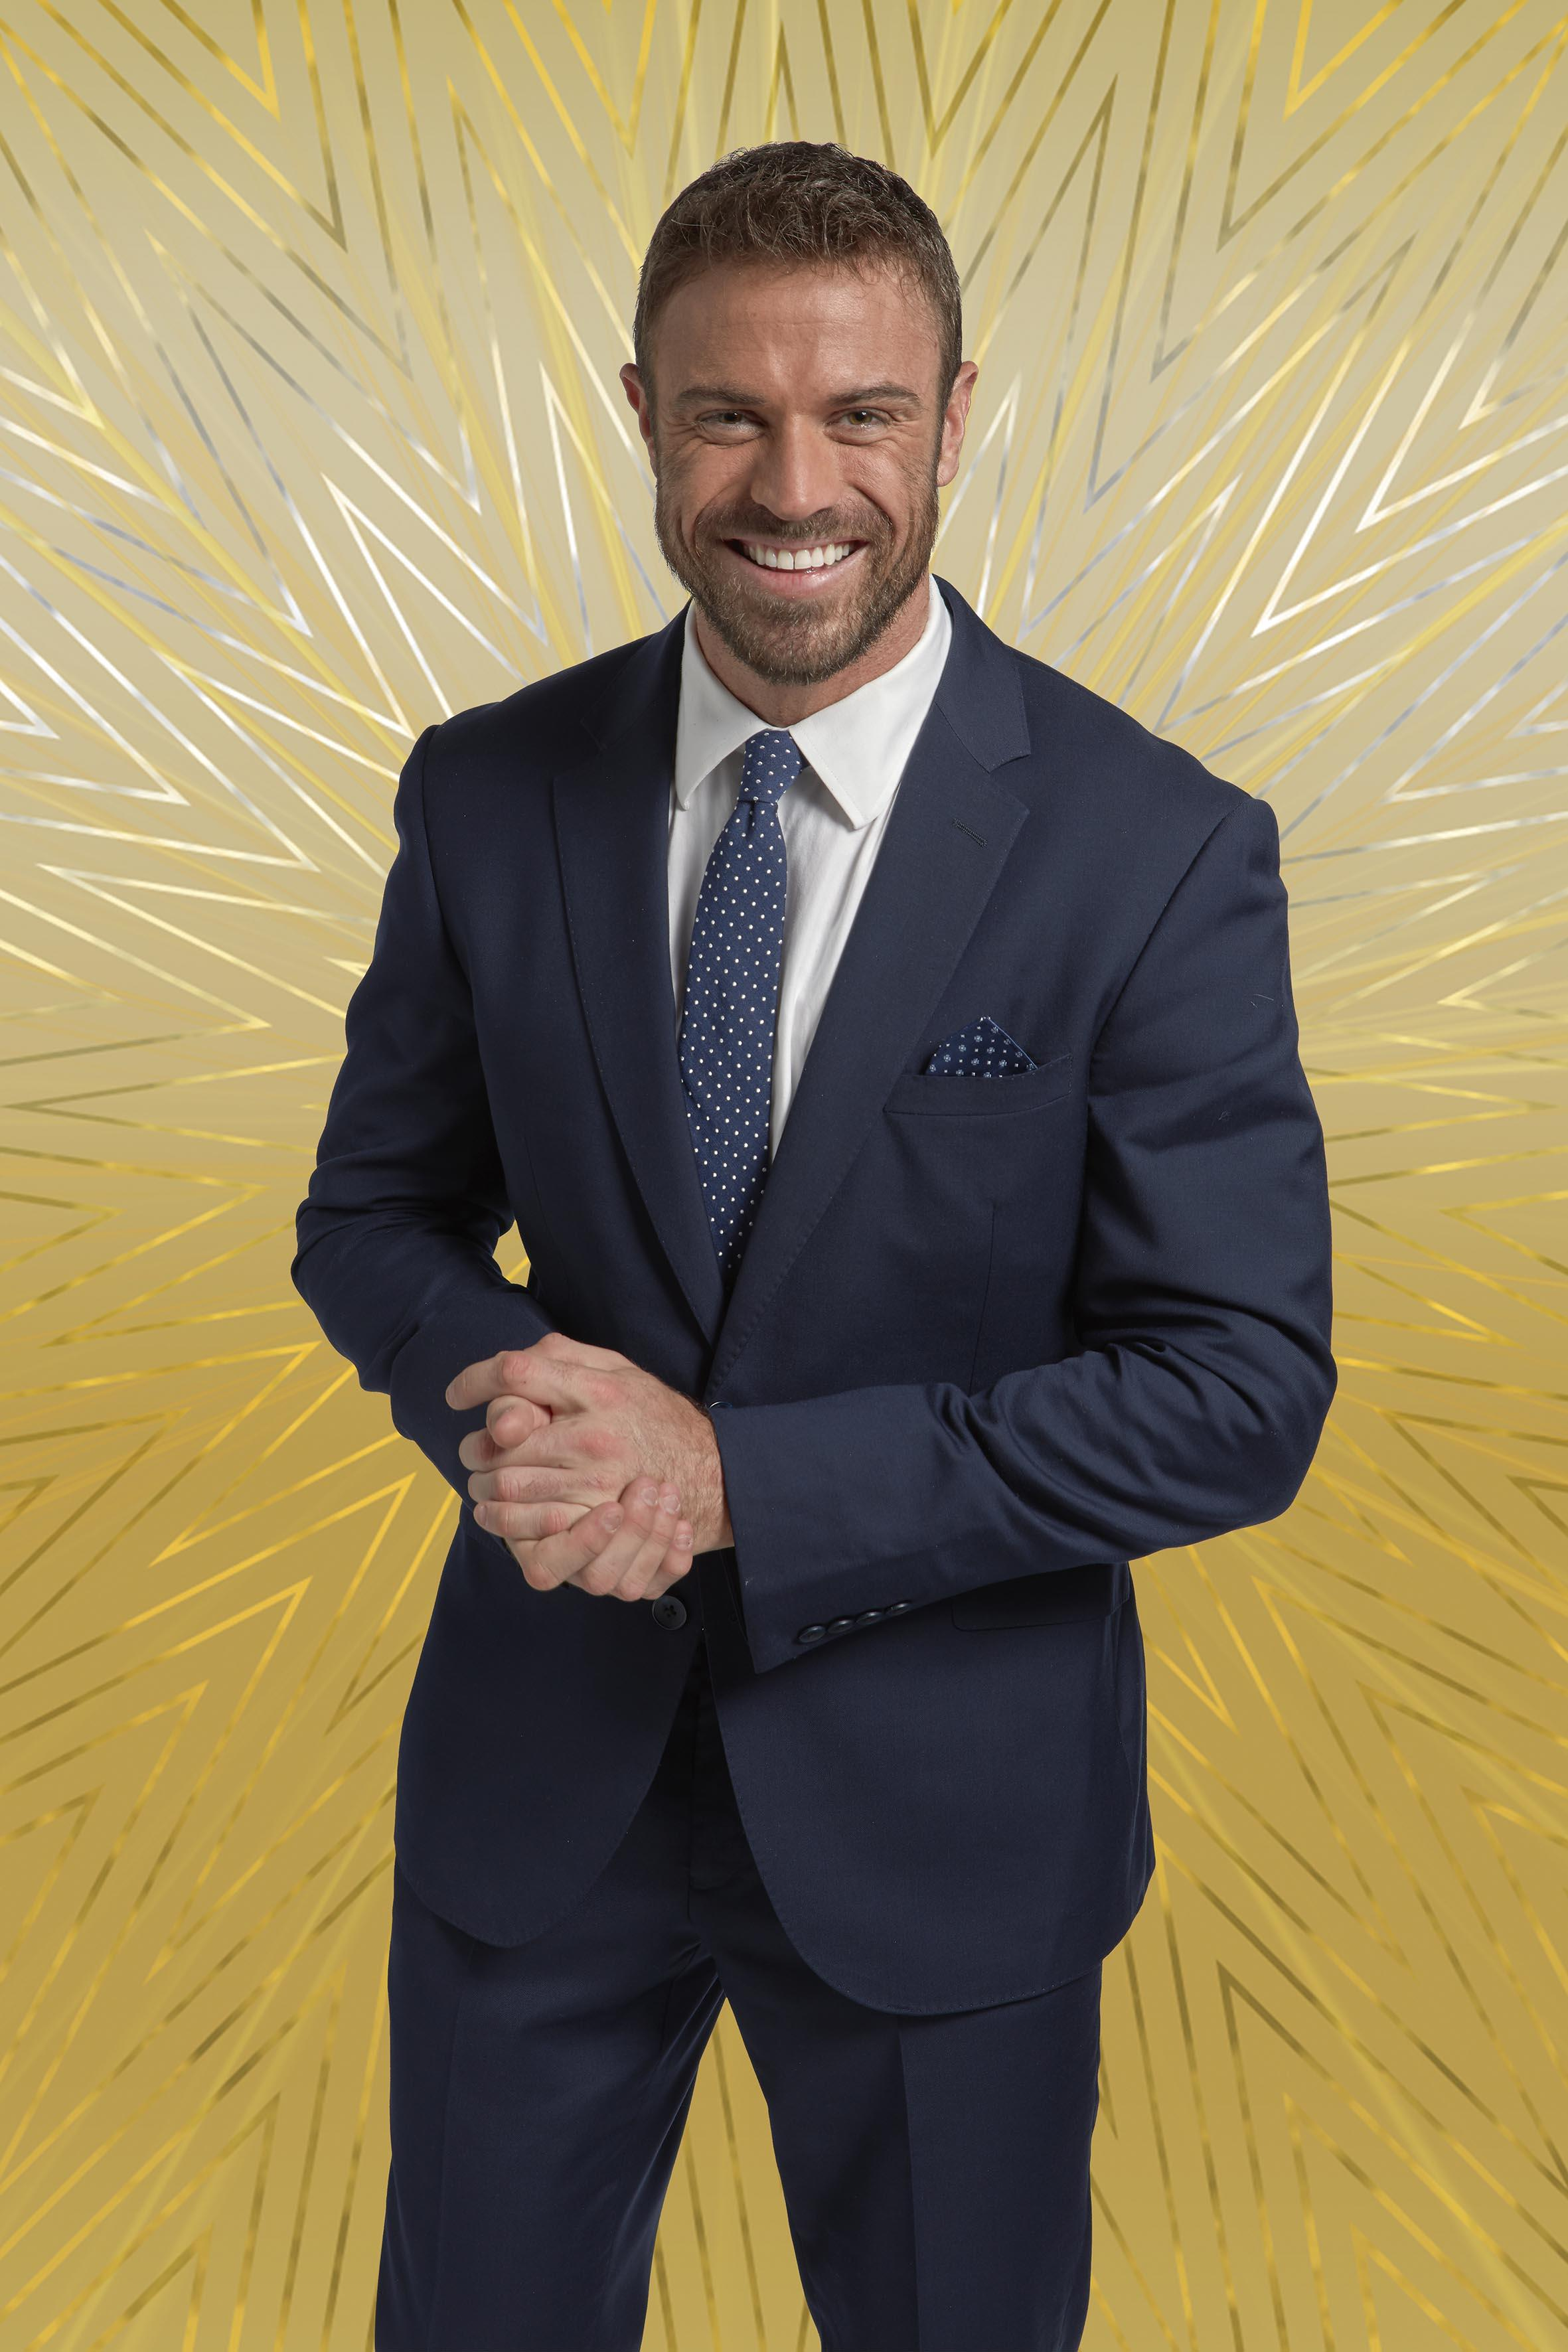 Who is Chad Johnson Celebrity Big Brother 2017 housemate and